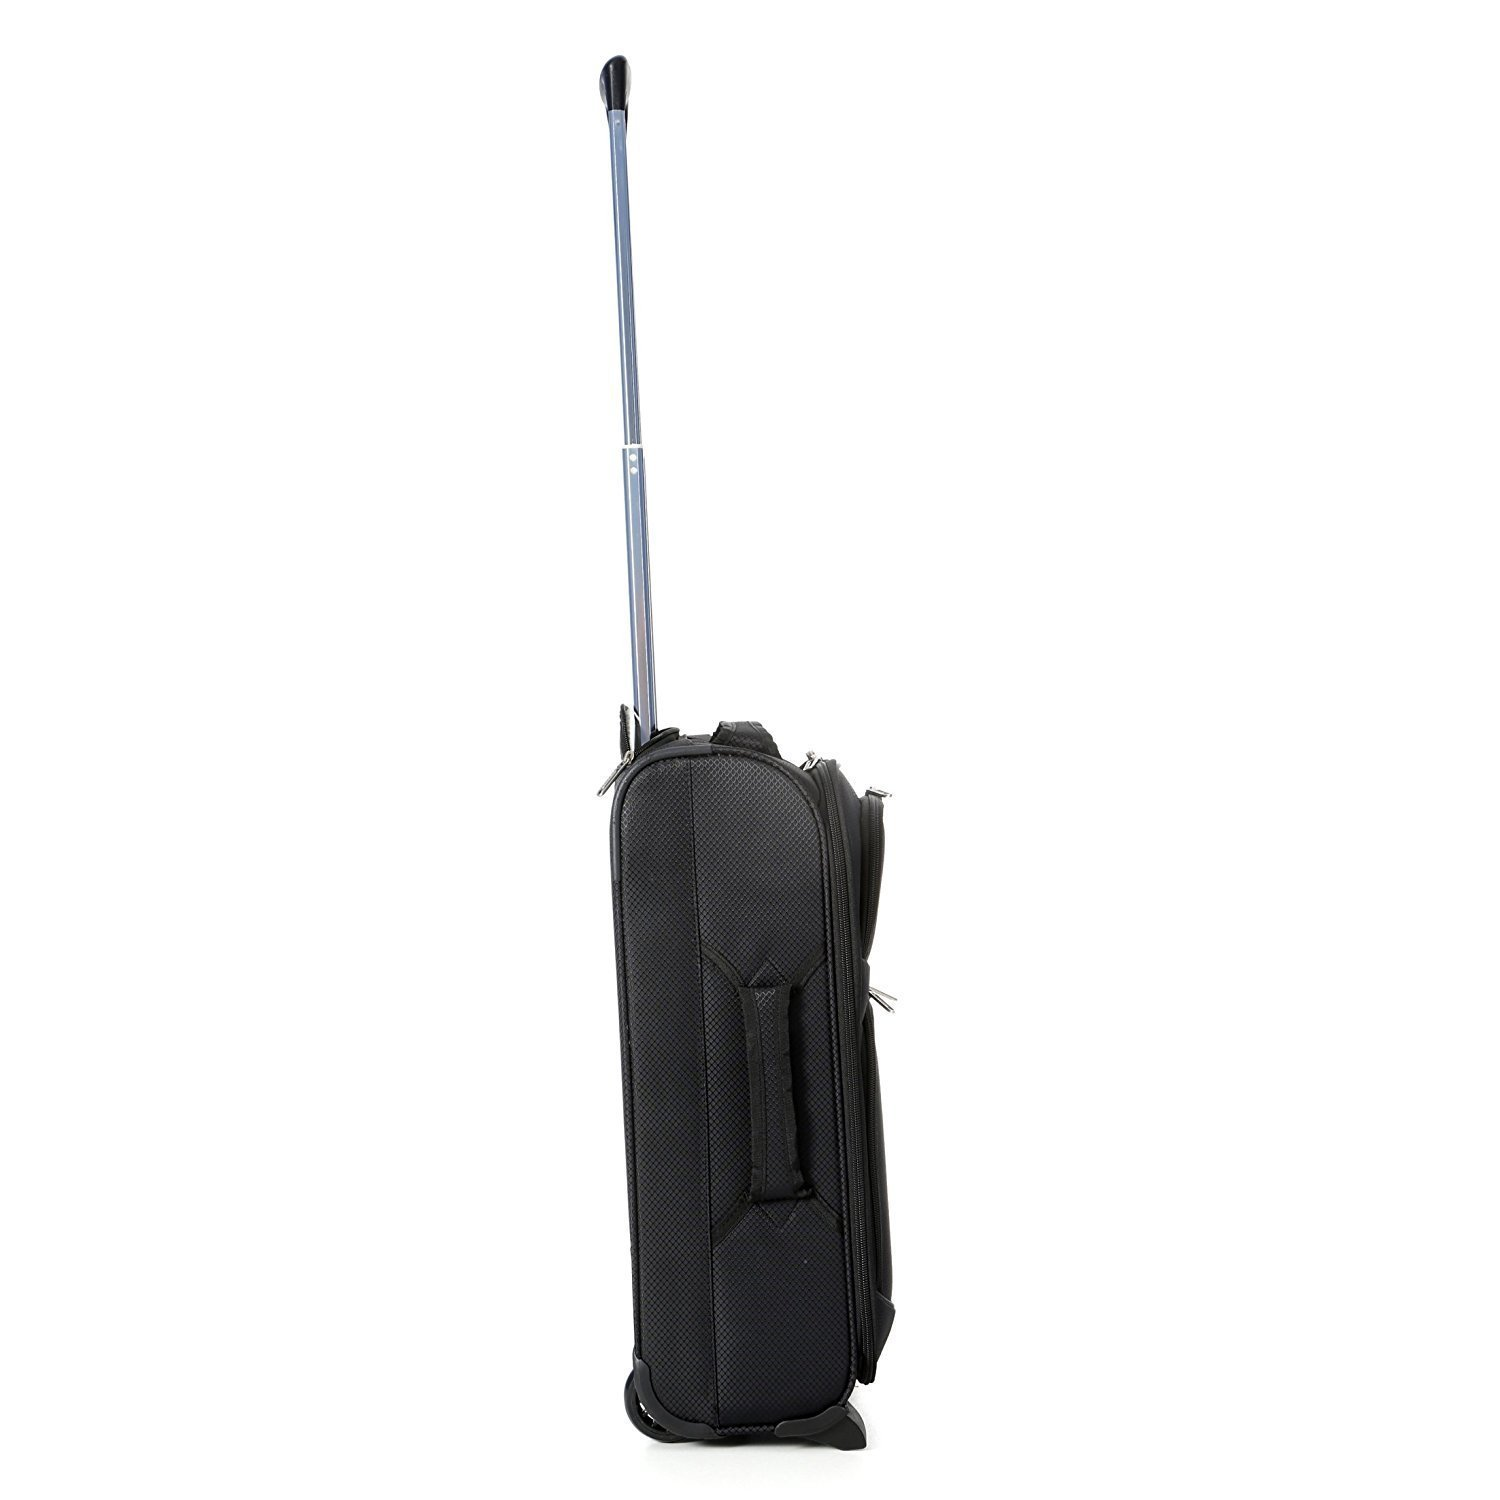 Amazon.com | Aerolite Lightweight 2 Wheel Ryanair Max Cabin Hand Luggage, 55 cm, 42 Litre, Black | Carry-Ons